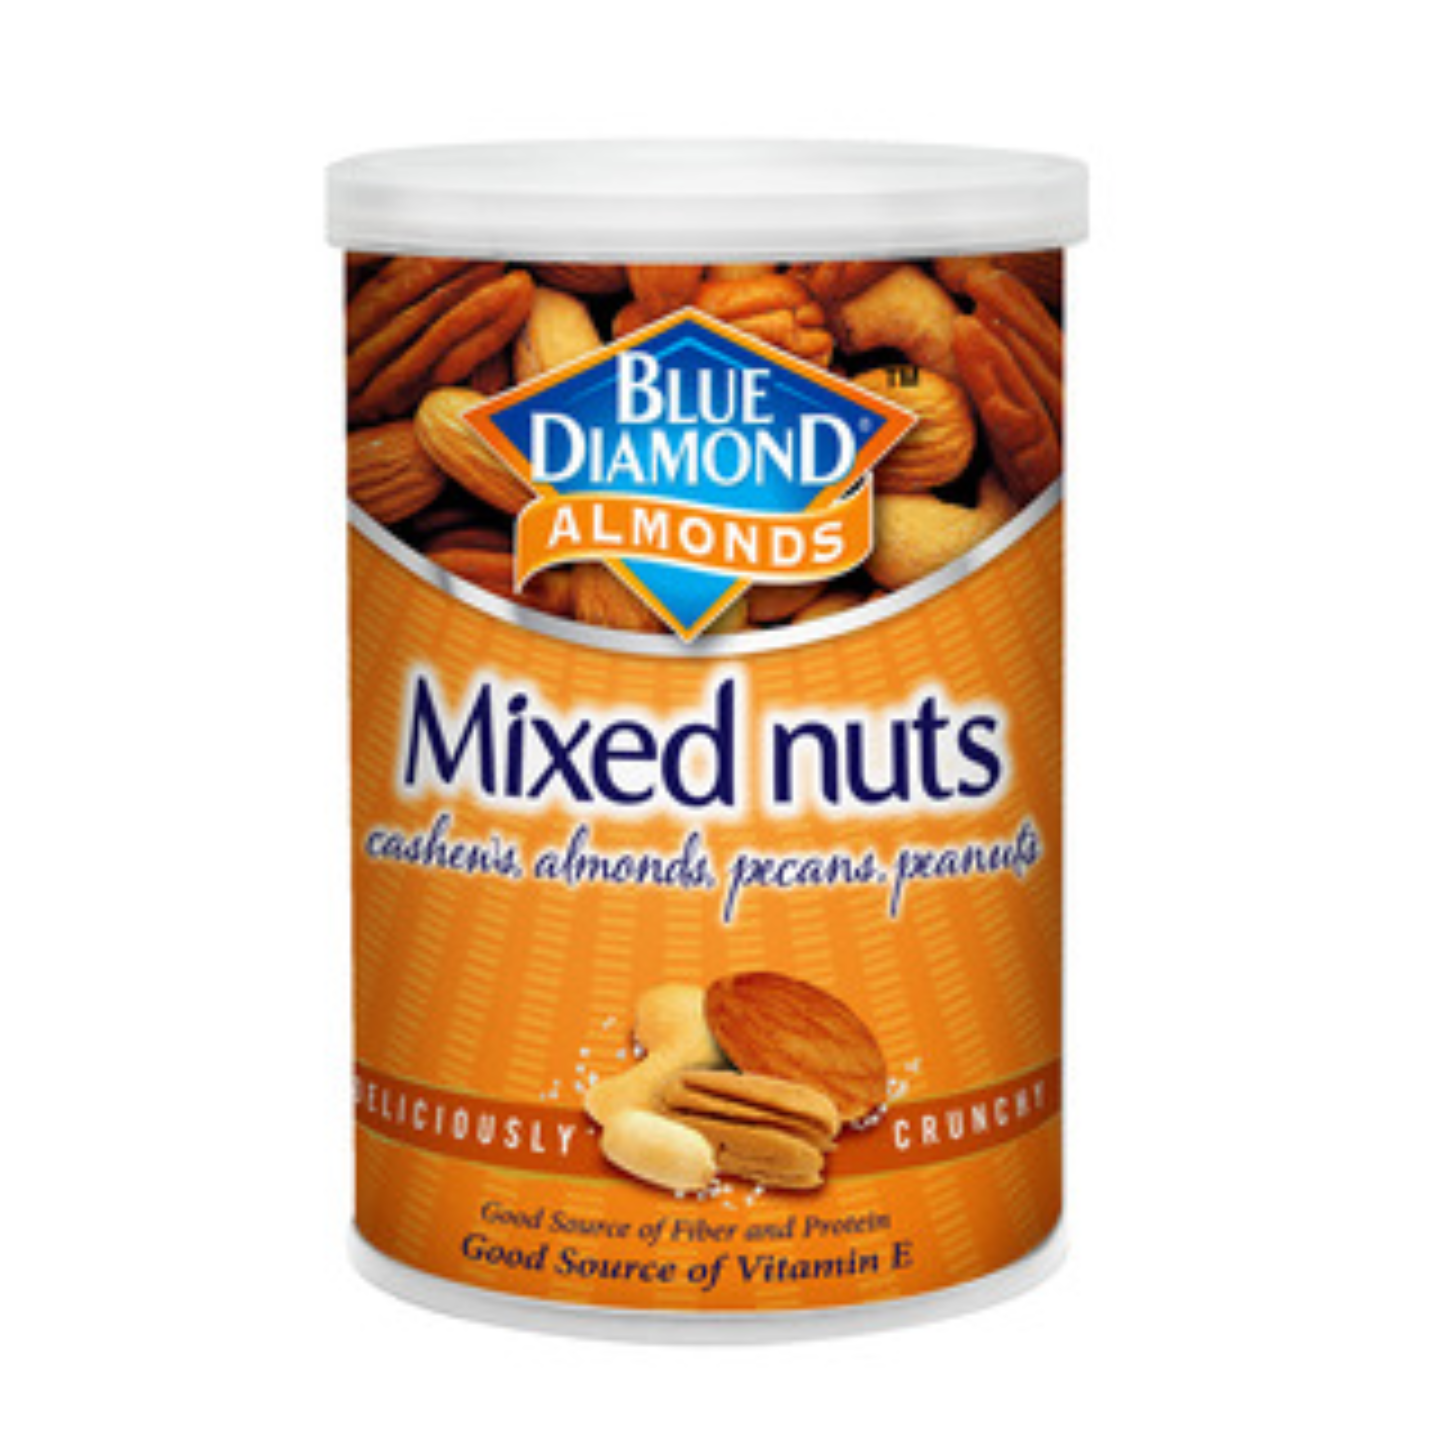 Blue Diamond Roasted Mixed Nuts ( Cashew Almonds Pecans And less than 30% Peanuts) 135g